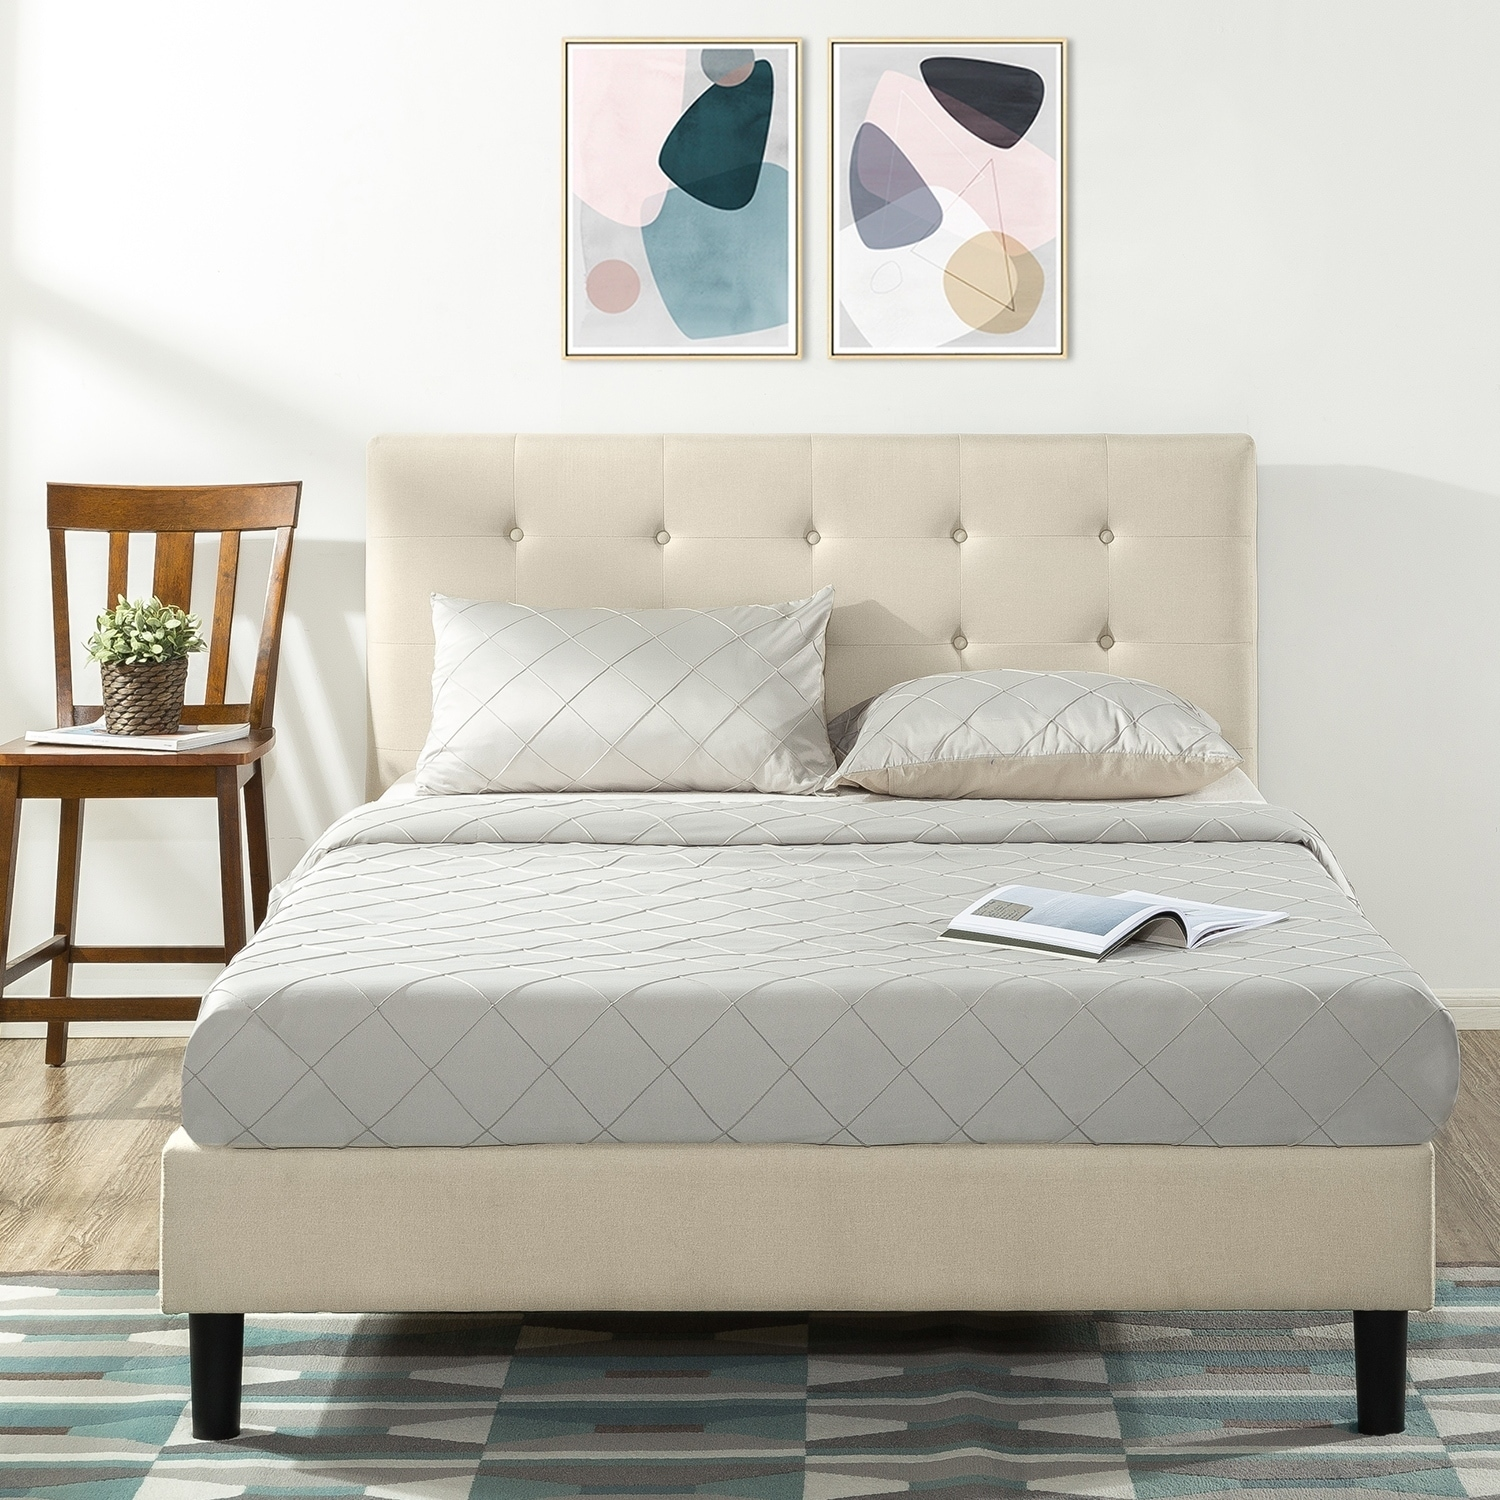 Shop Copper Grove Tarter King Upholstered Platform Bed With Tufted Headboard On Sale Overstock 25859030